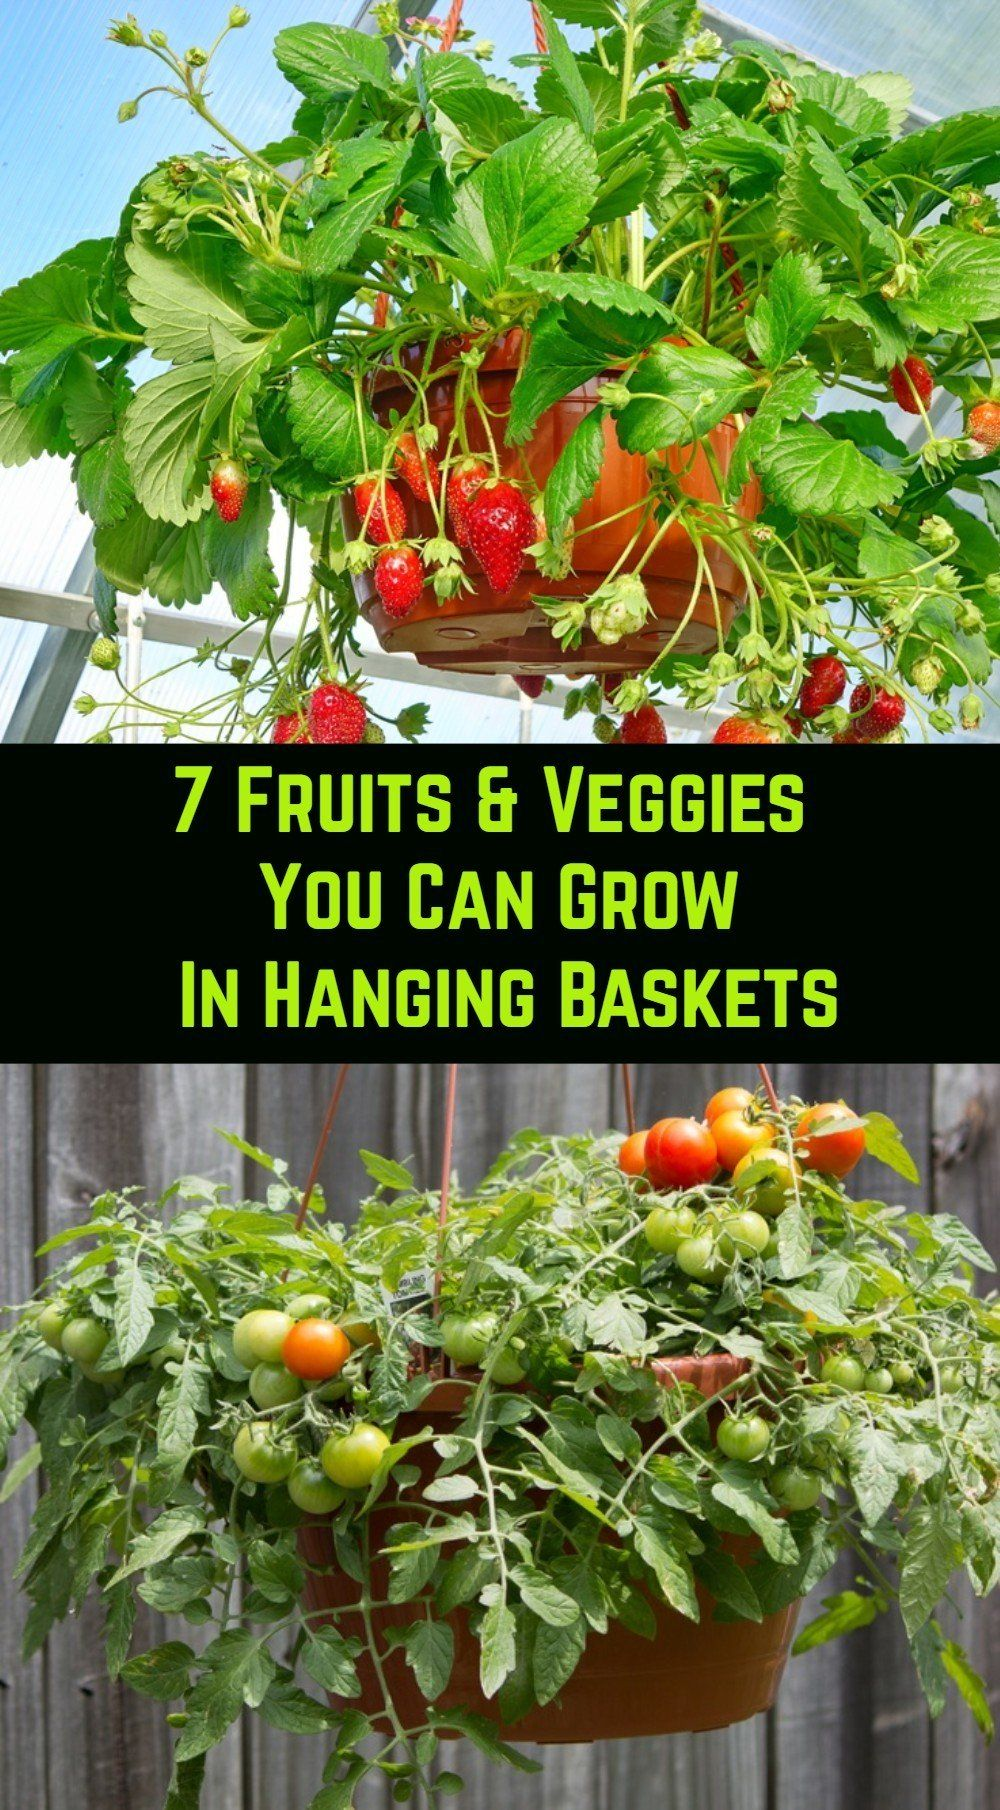 Planting fruits and veggies in hanging baskets saves space, time and provides you with lots of fresh food if done correctly. Here are our top 7 things you could grow in baskets.